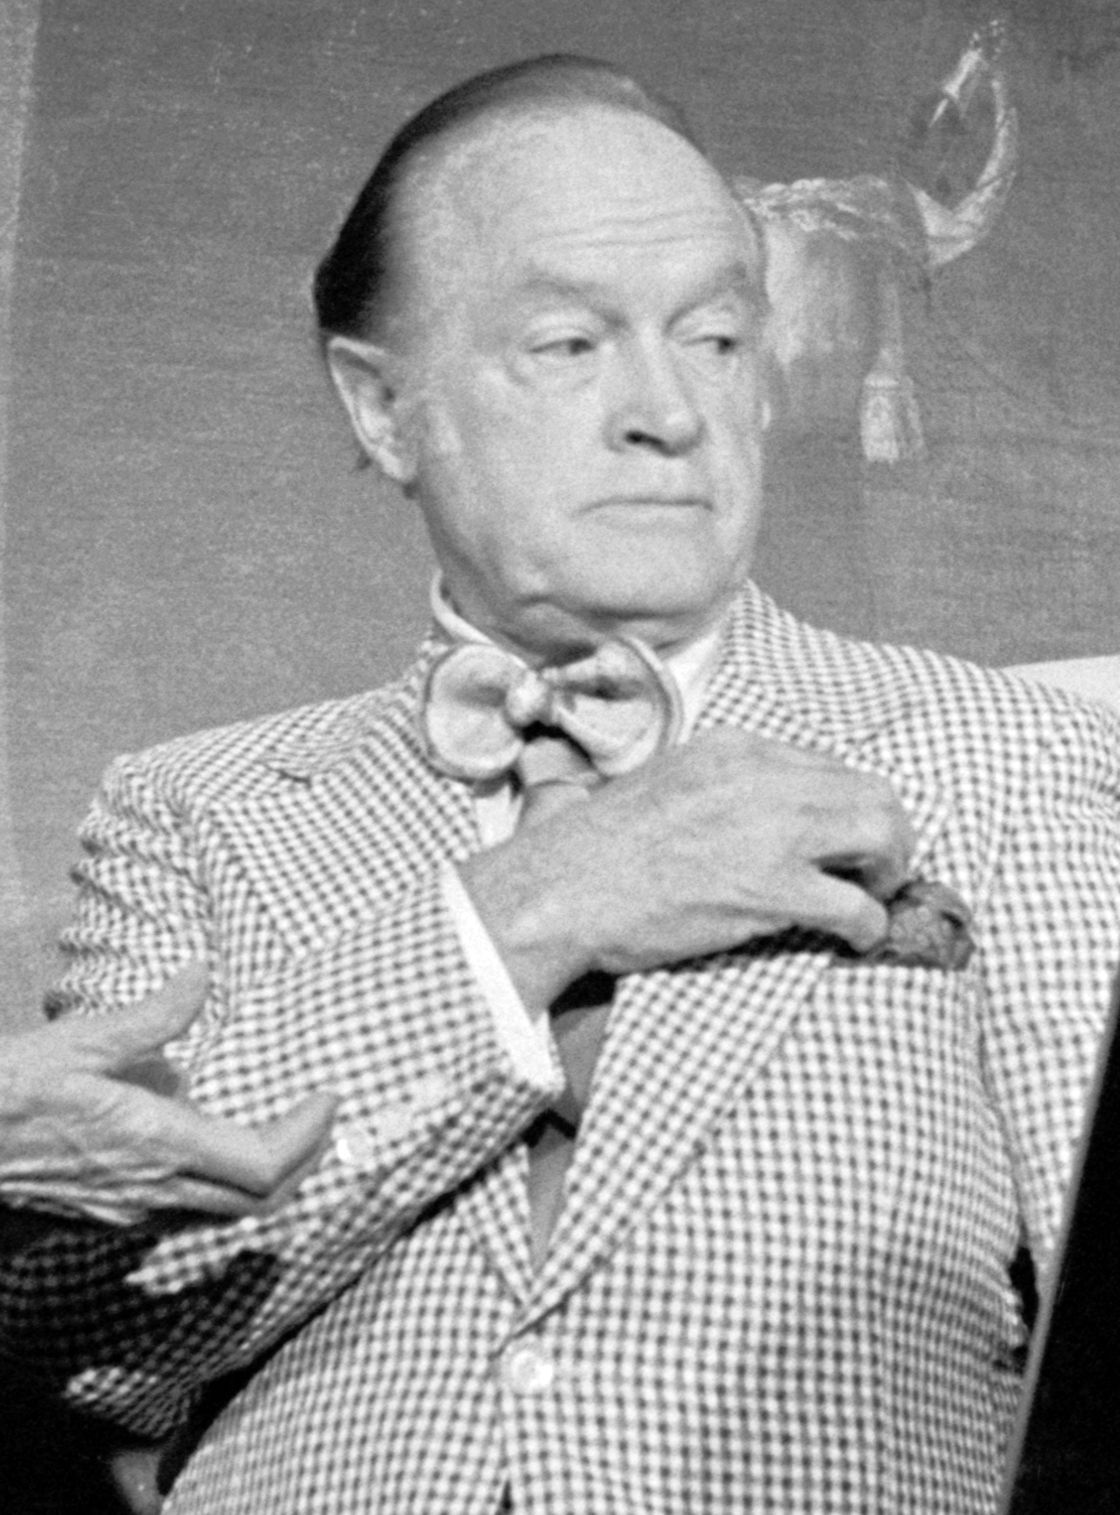 Photo of Bob Hope: American comedian, actor, singer and dancer